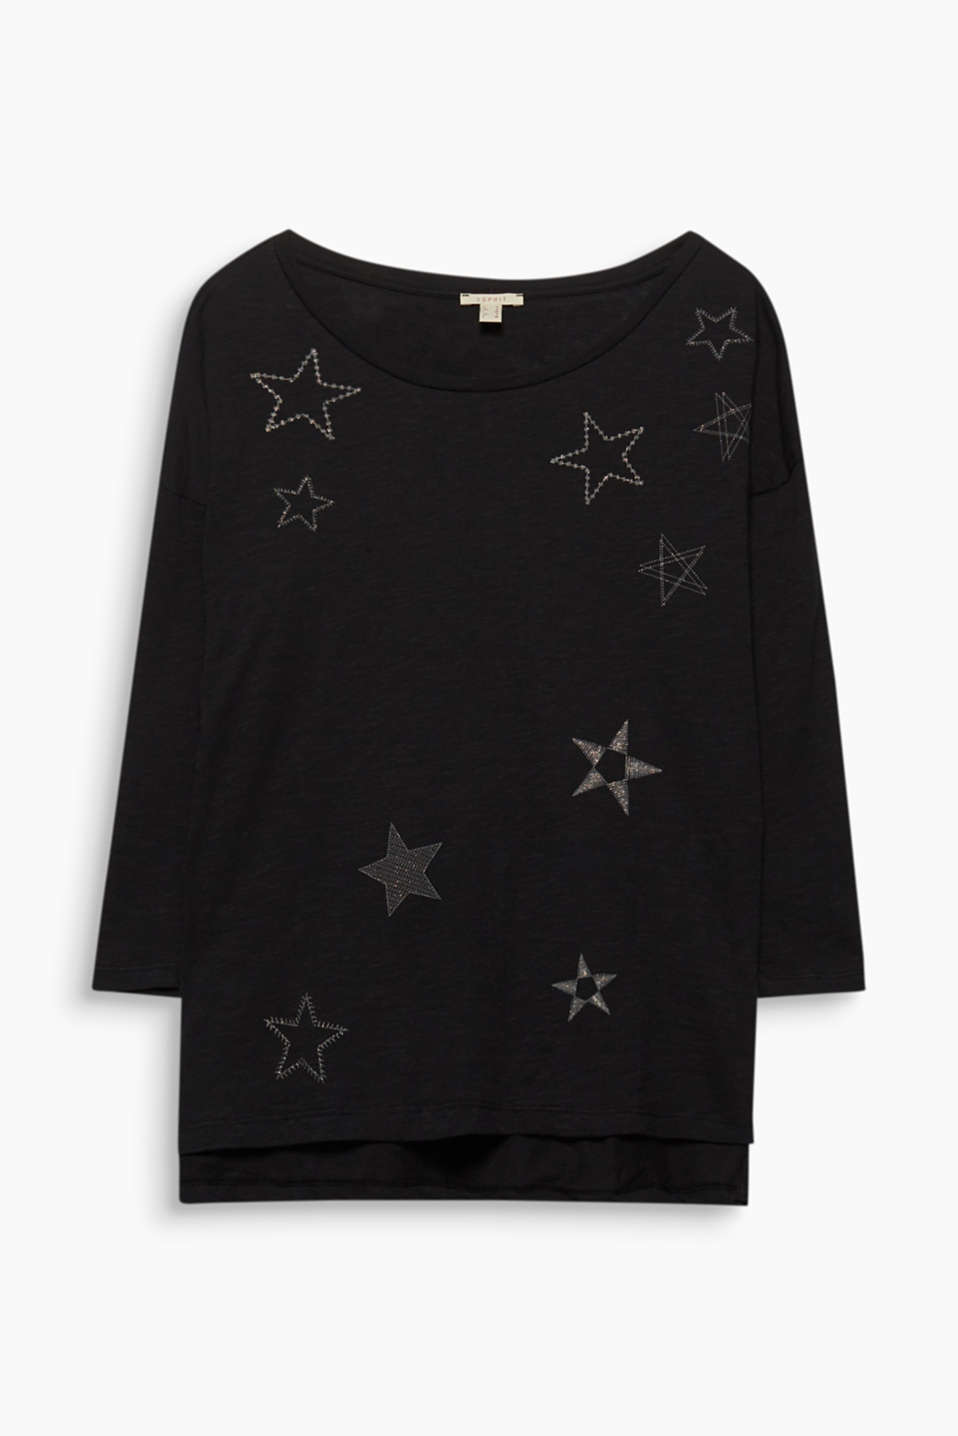 This cotton top gets its lightness from its airy slub texture and elegant- glittering star prints!